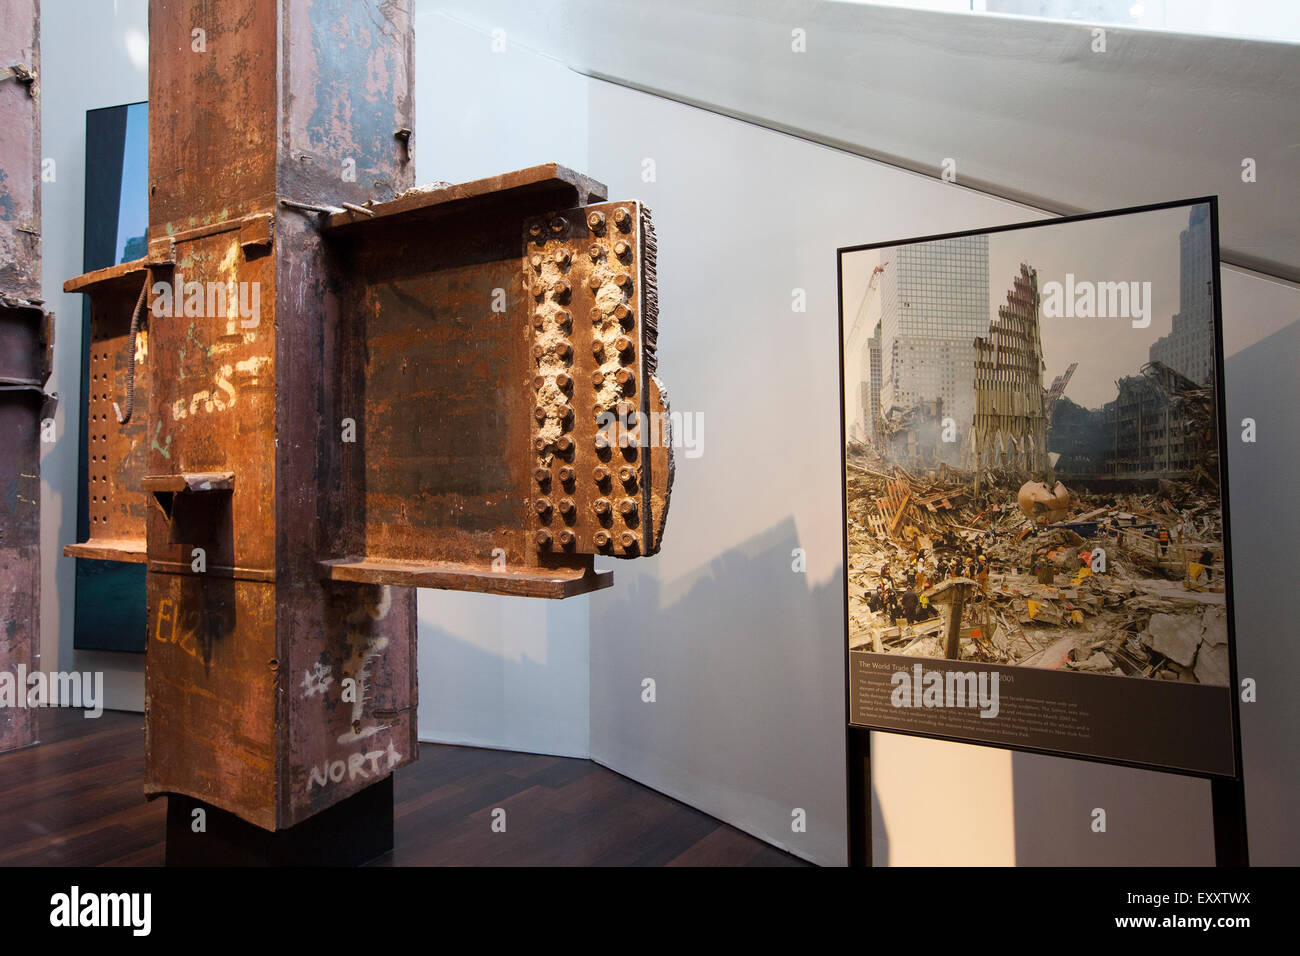 NEW YORK - May 30, 2015:  One of the architectural tridents from the World Trade Center sits on display at the National - Stock Image